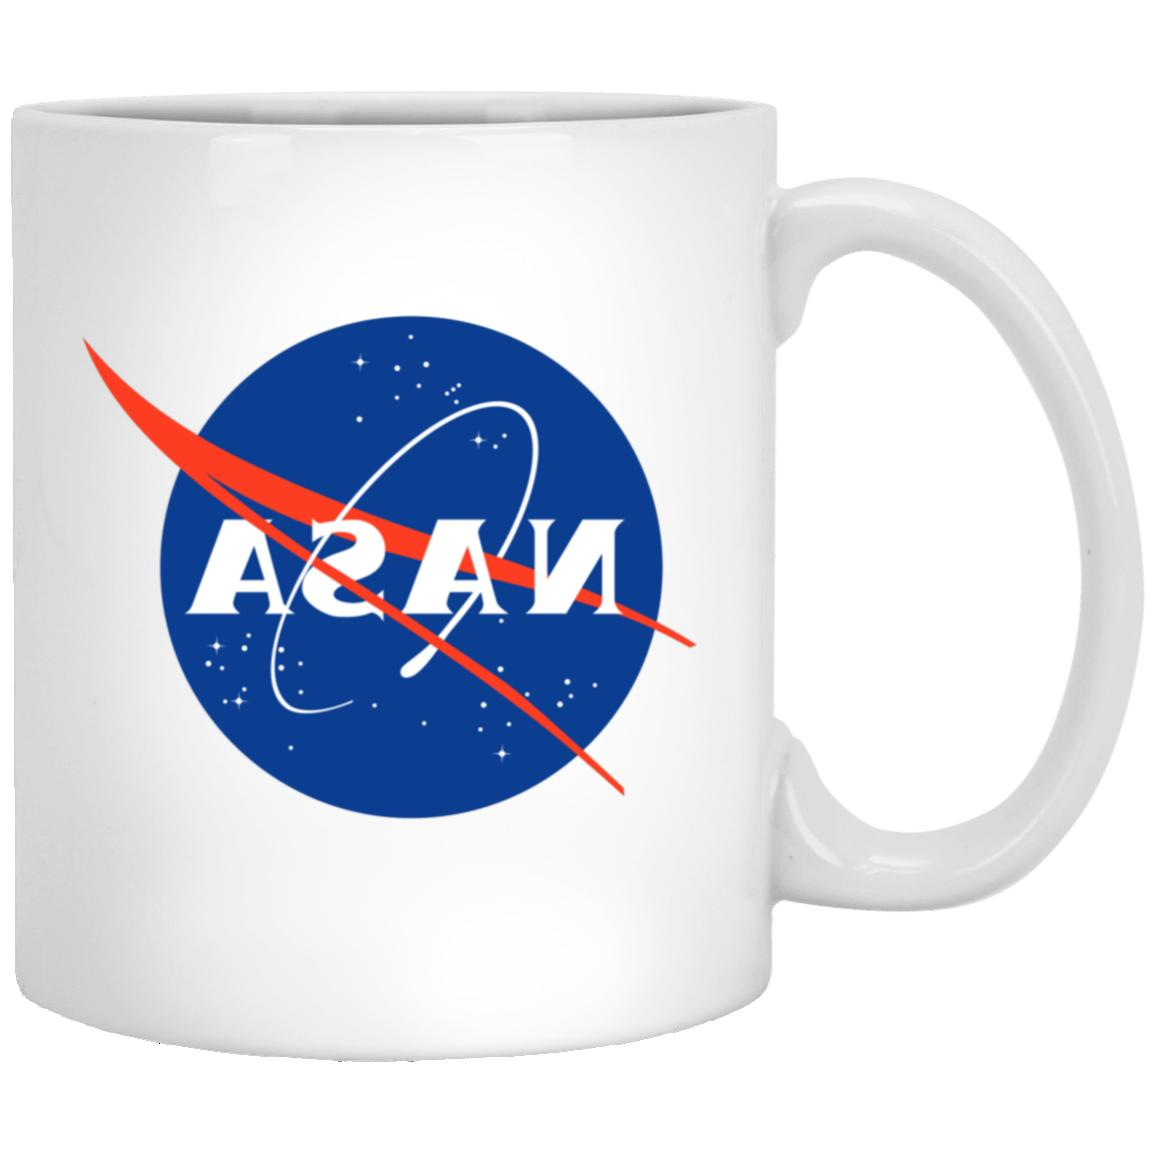 nasa mug space nerd geek cup coffee